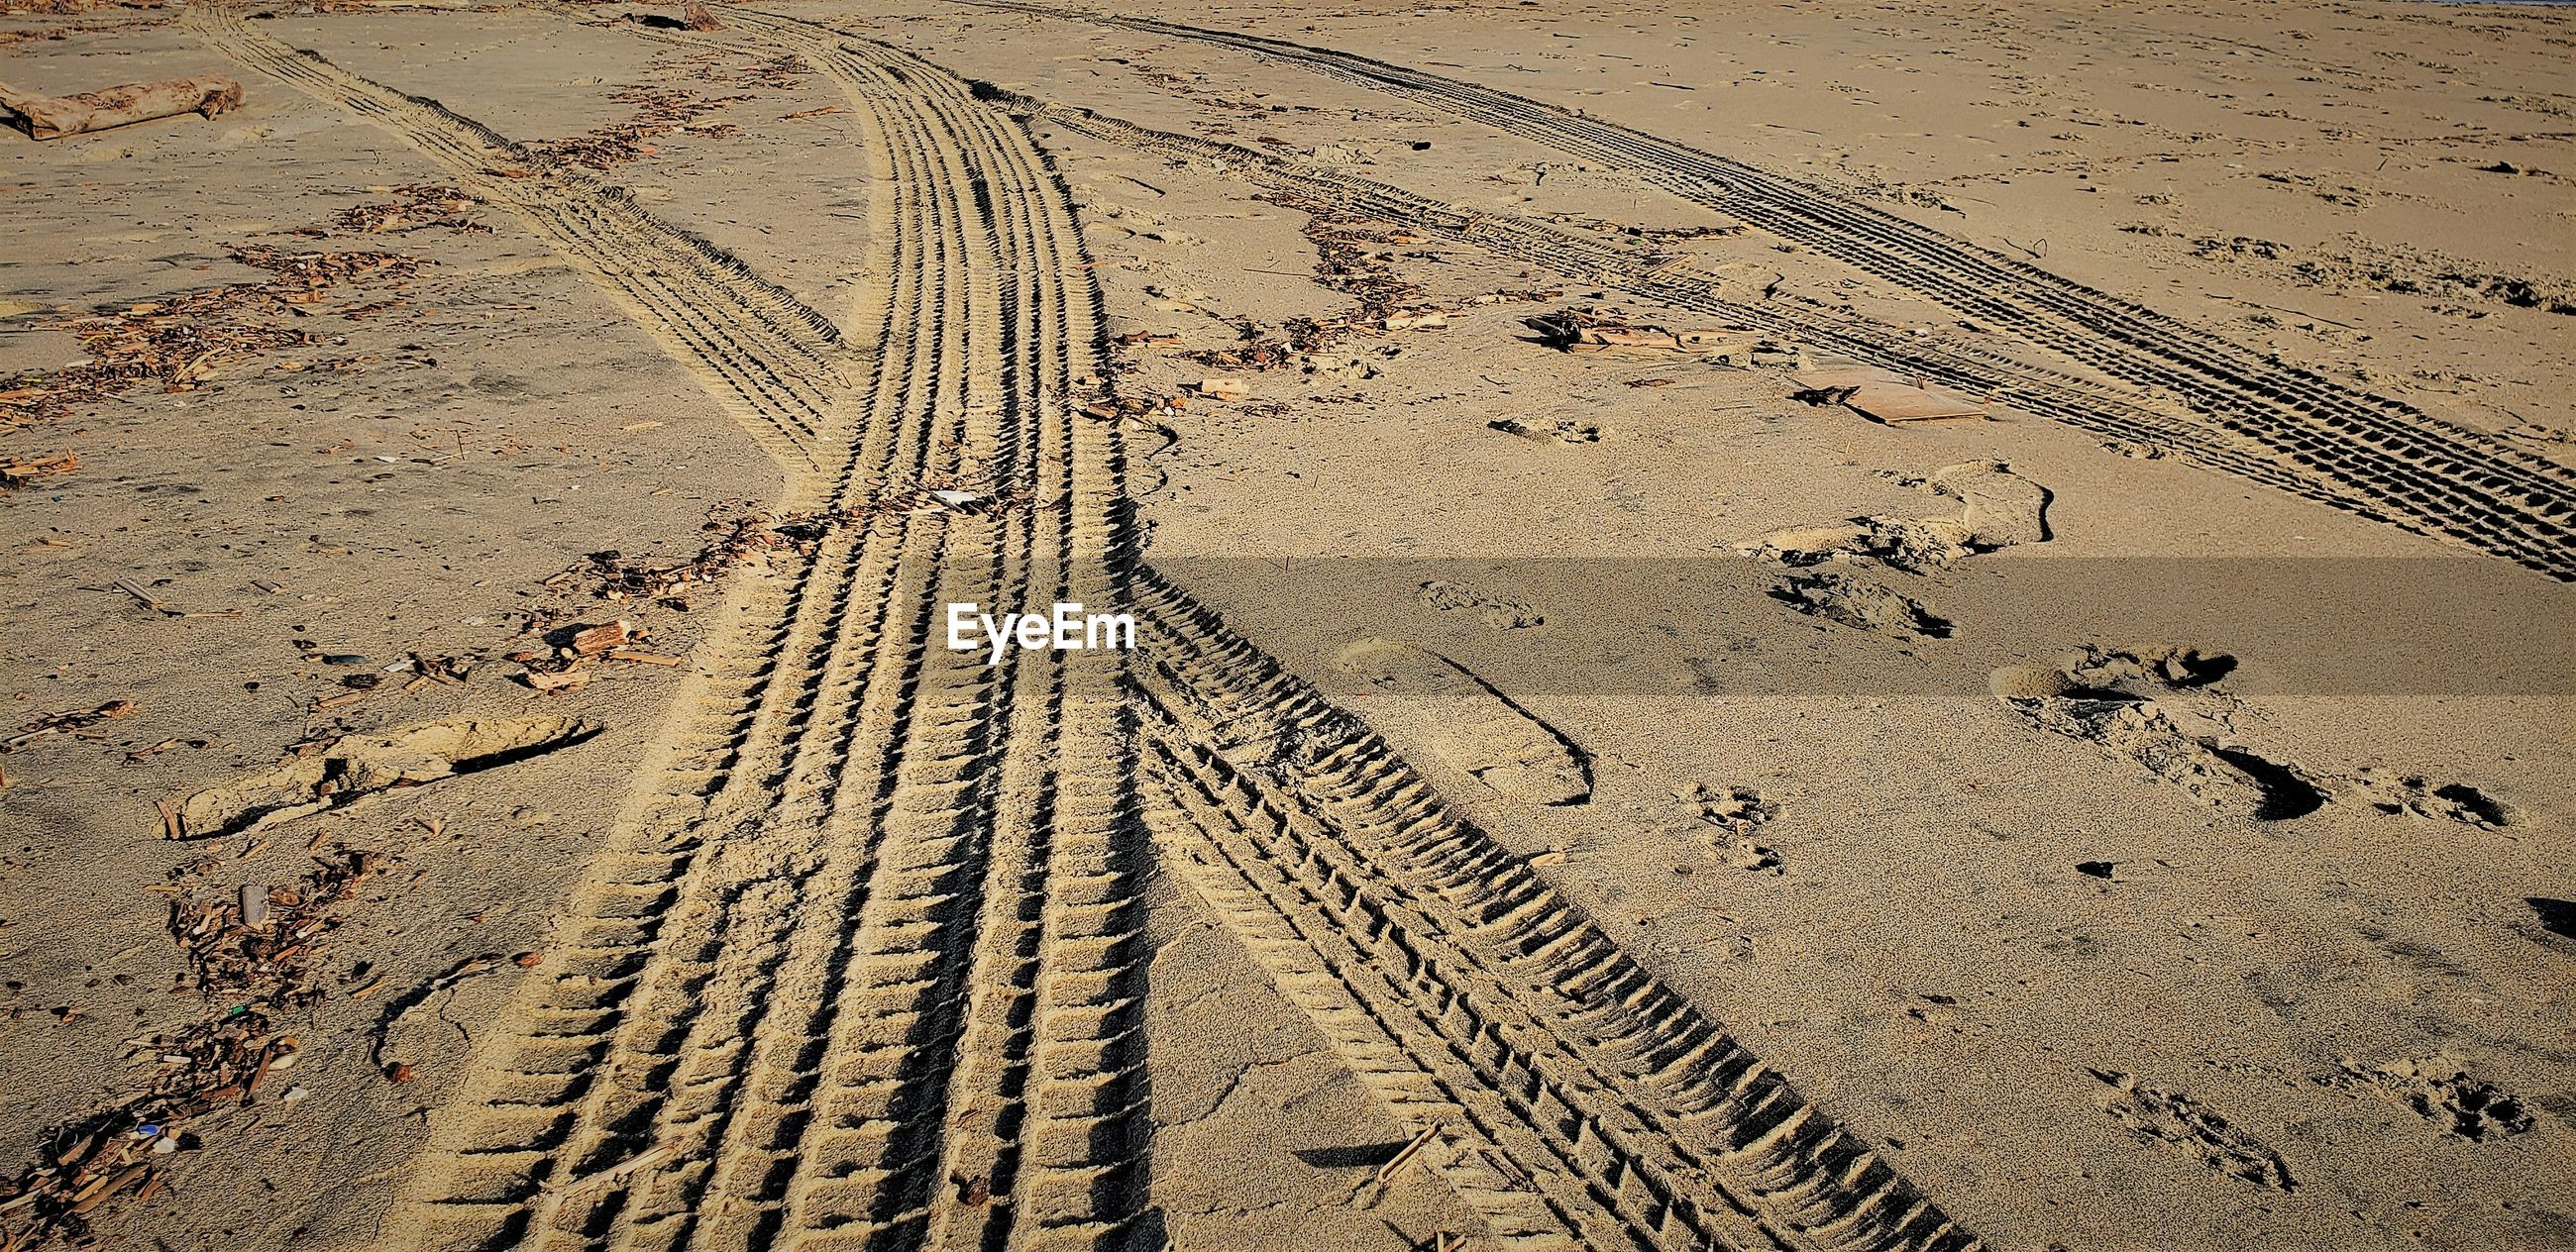 HIGH ANGLE VIEW OF TIRE TRACK ON SAND